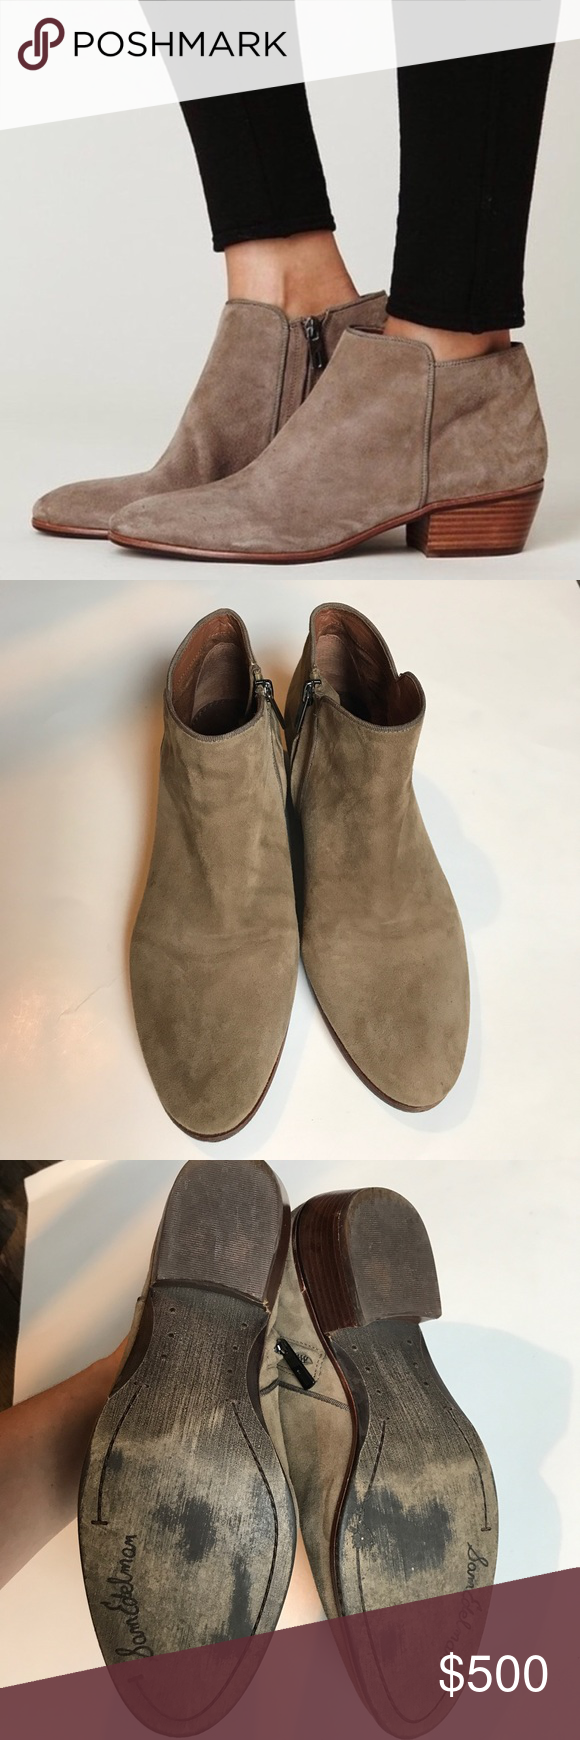 0ed3d1489af3eb Sam Edelman Petty Booties Condition - great shape